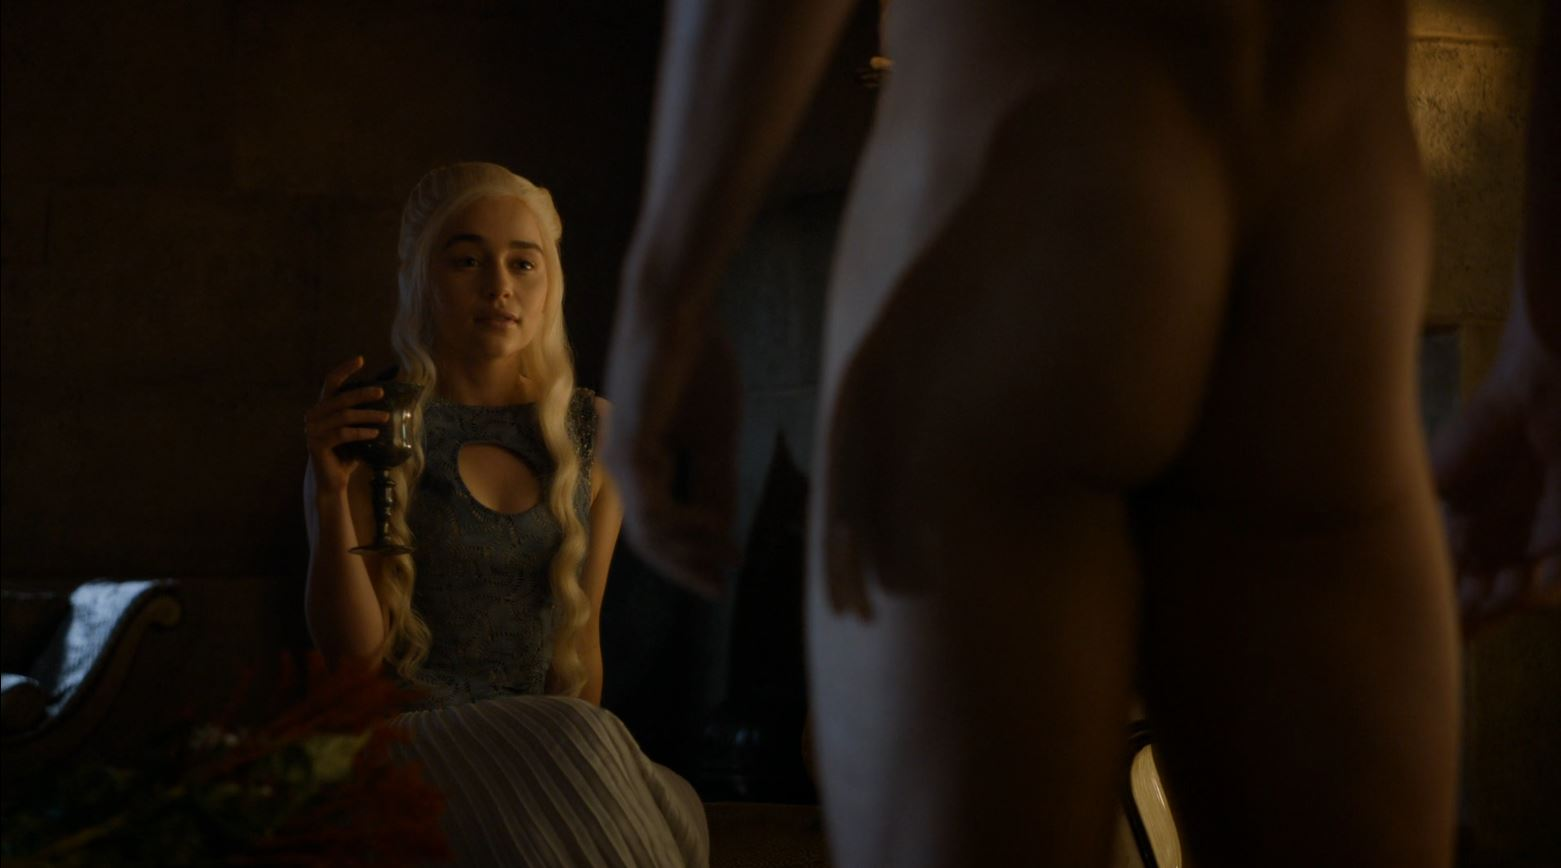 Game Of Thrones S4Ep7 Mockingbird Review - Nude Daario Naharis in front of Daenerys (Emilia Clarke)